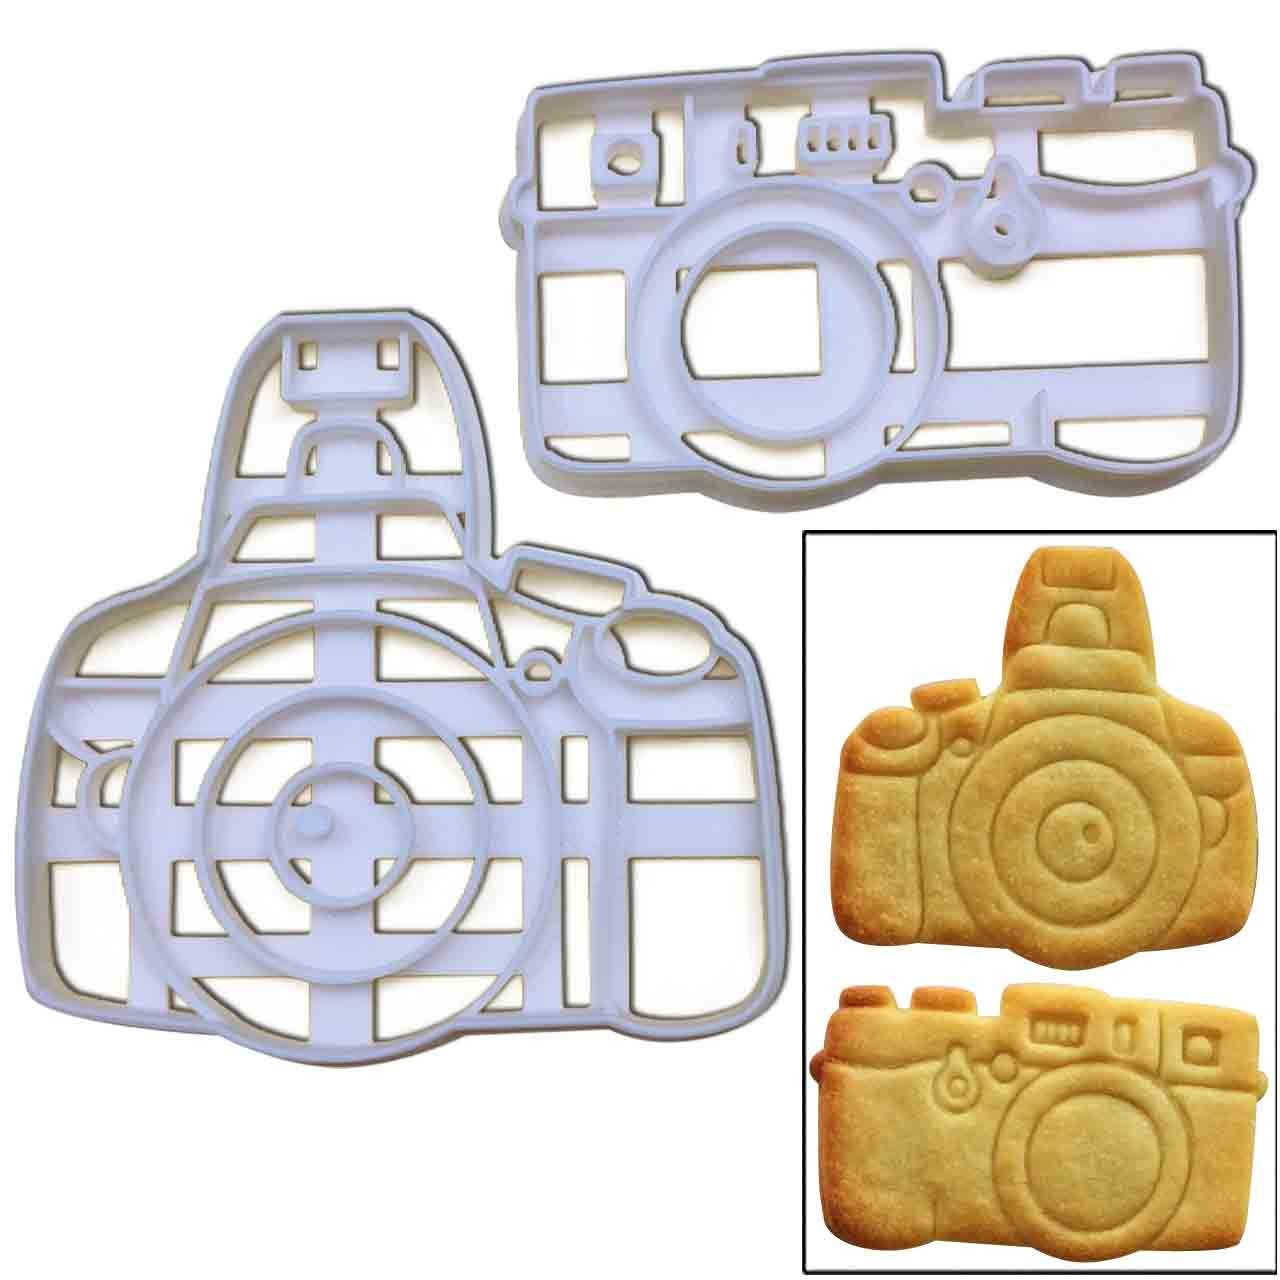 : gifts for photographers under 20 dollars cookie cutter